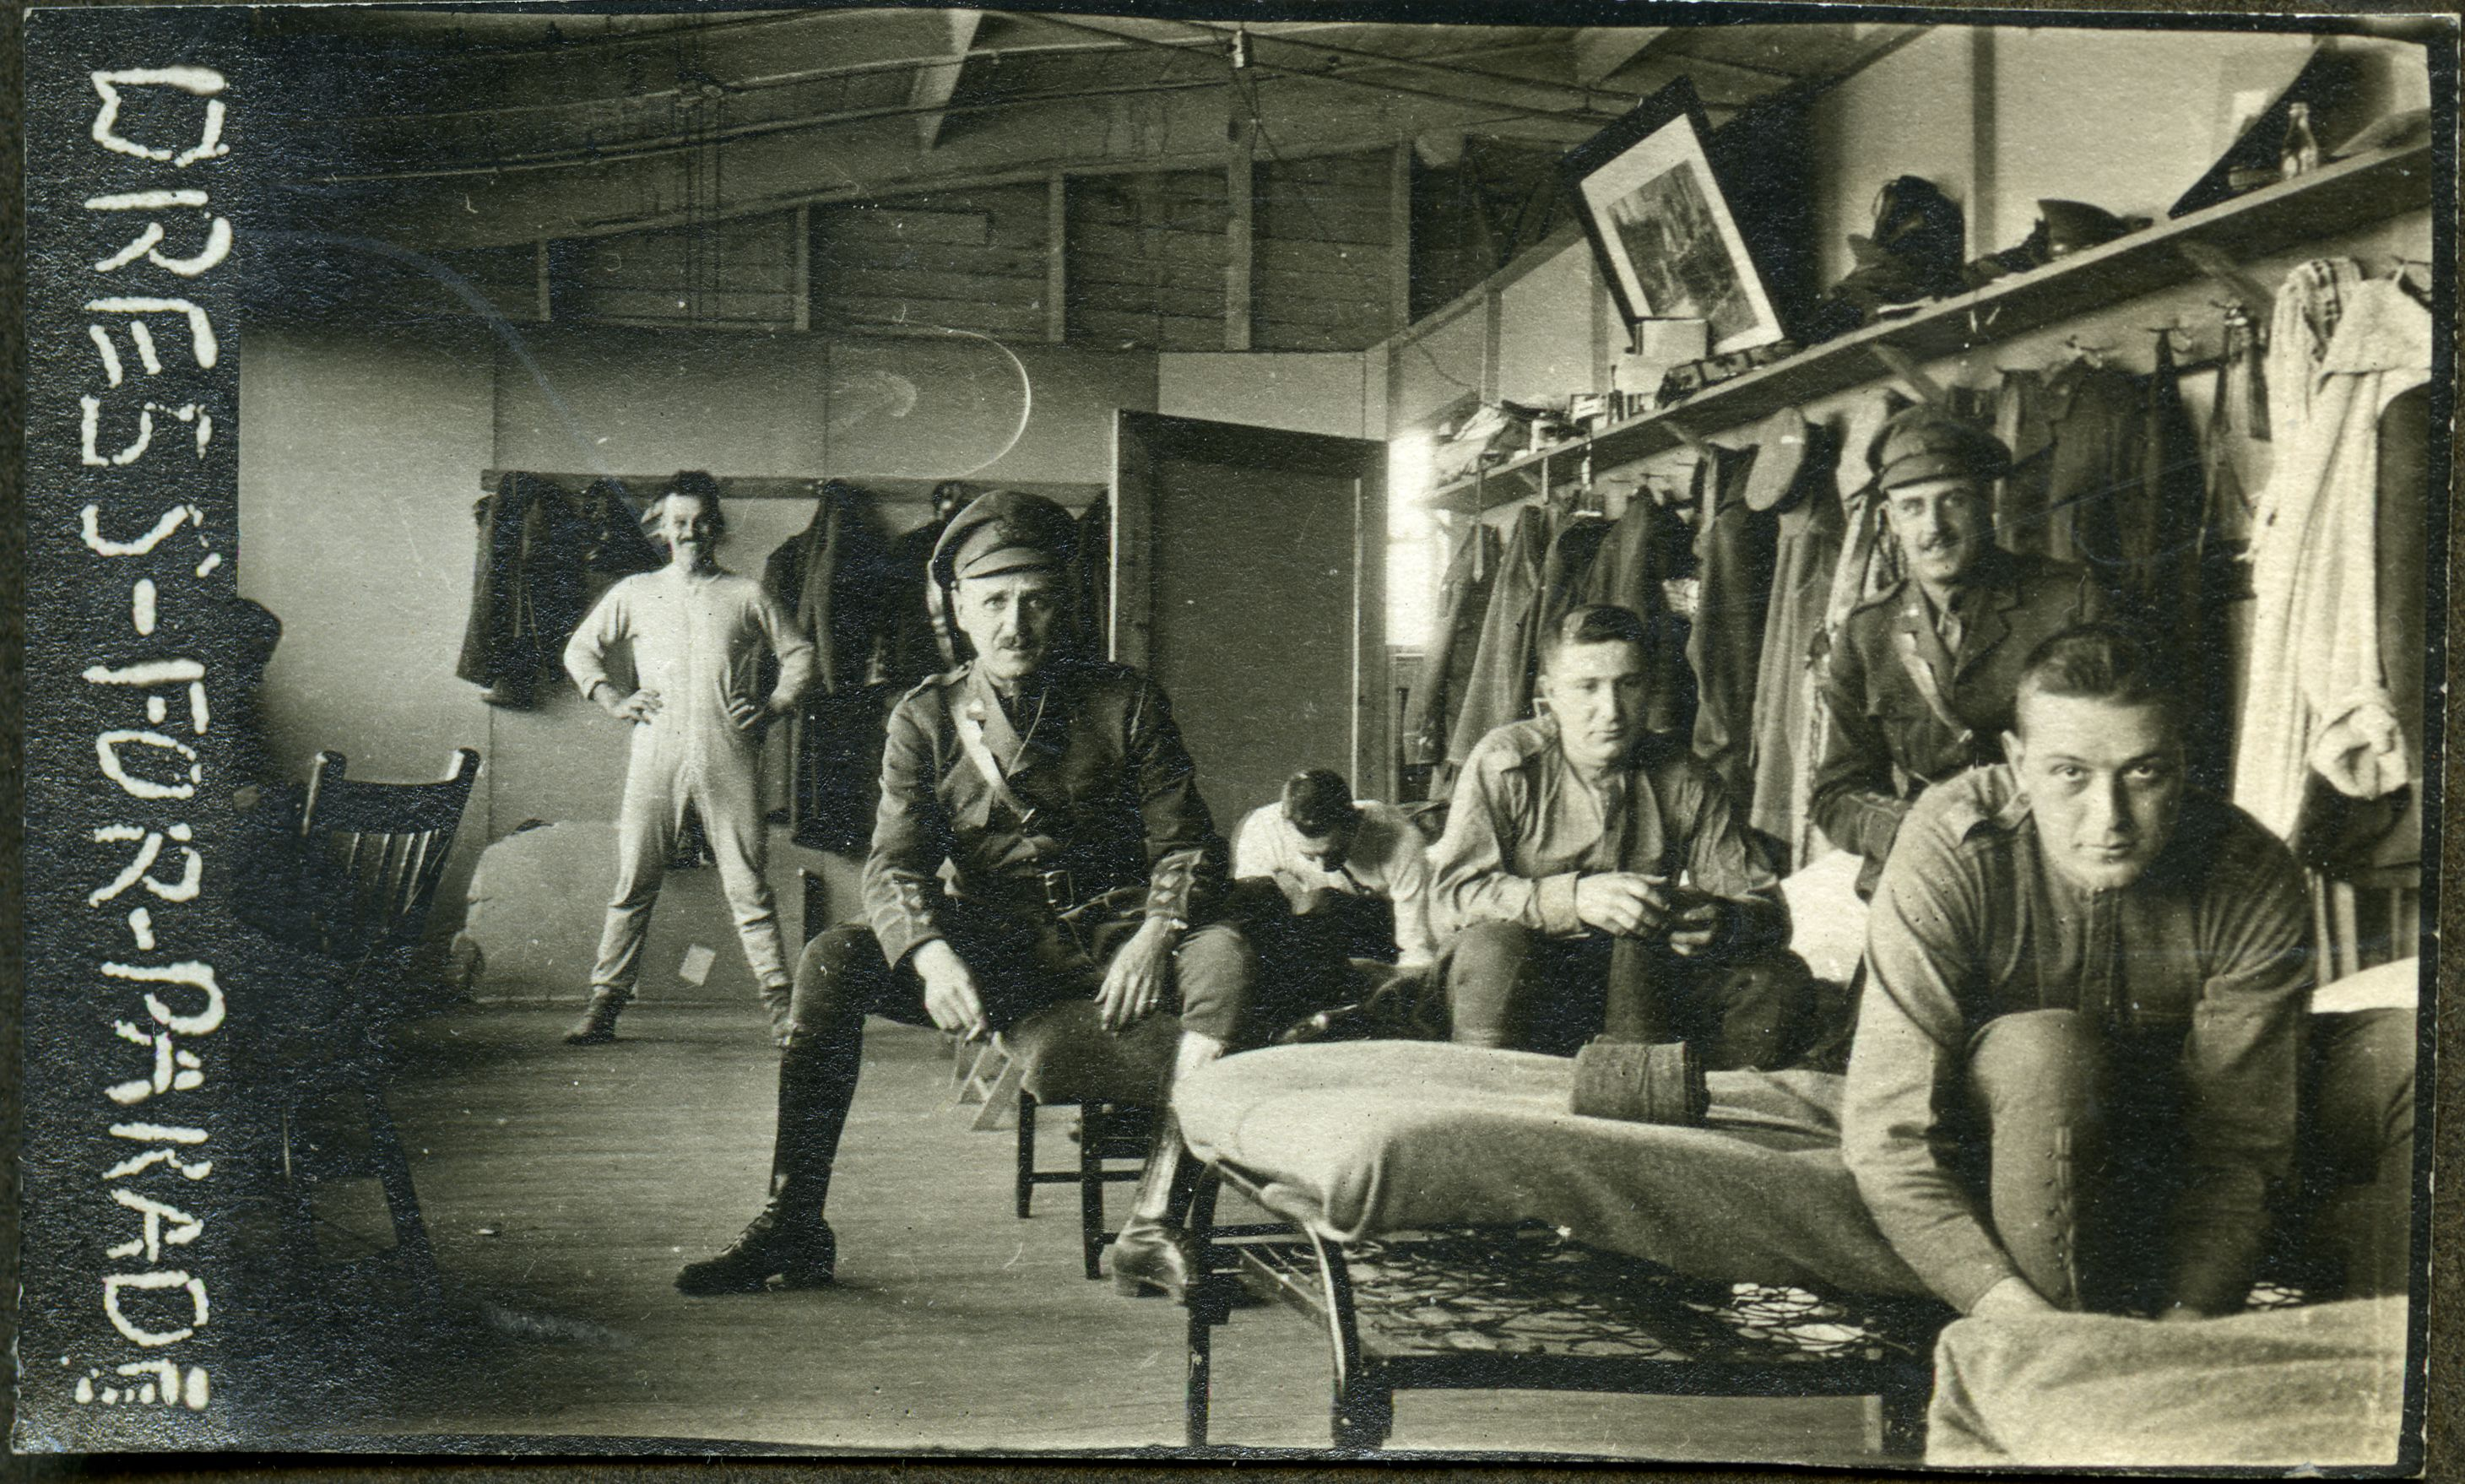 Barracks in Kitchener, with men getting dressed into military uniforms, 1910s.